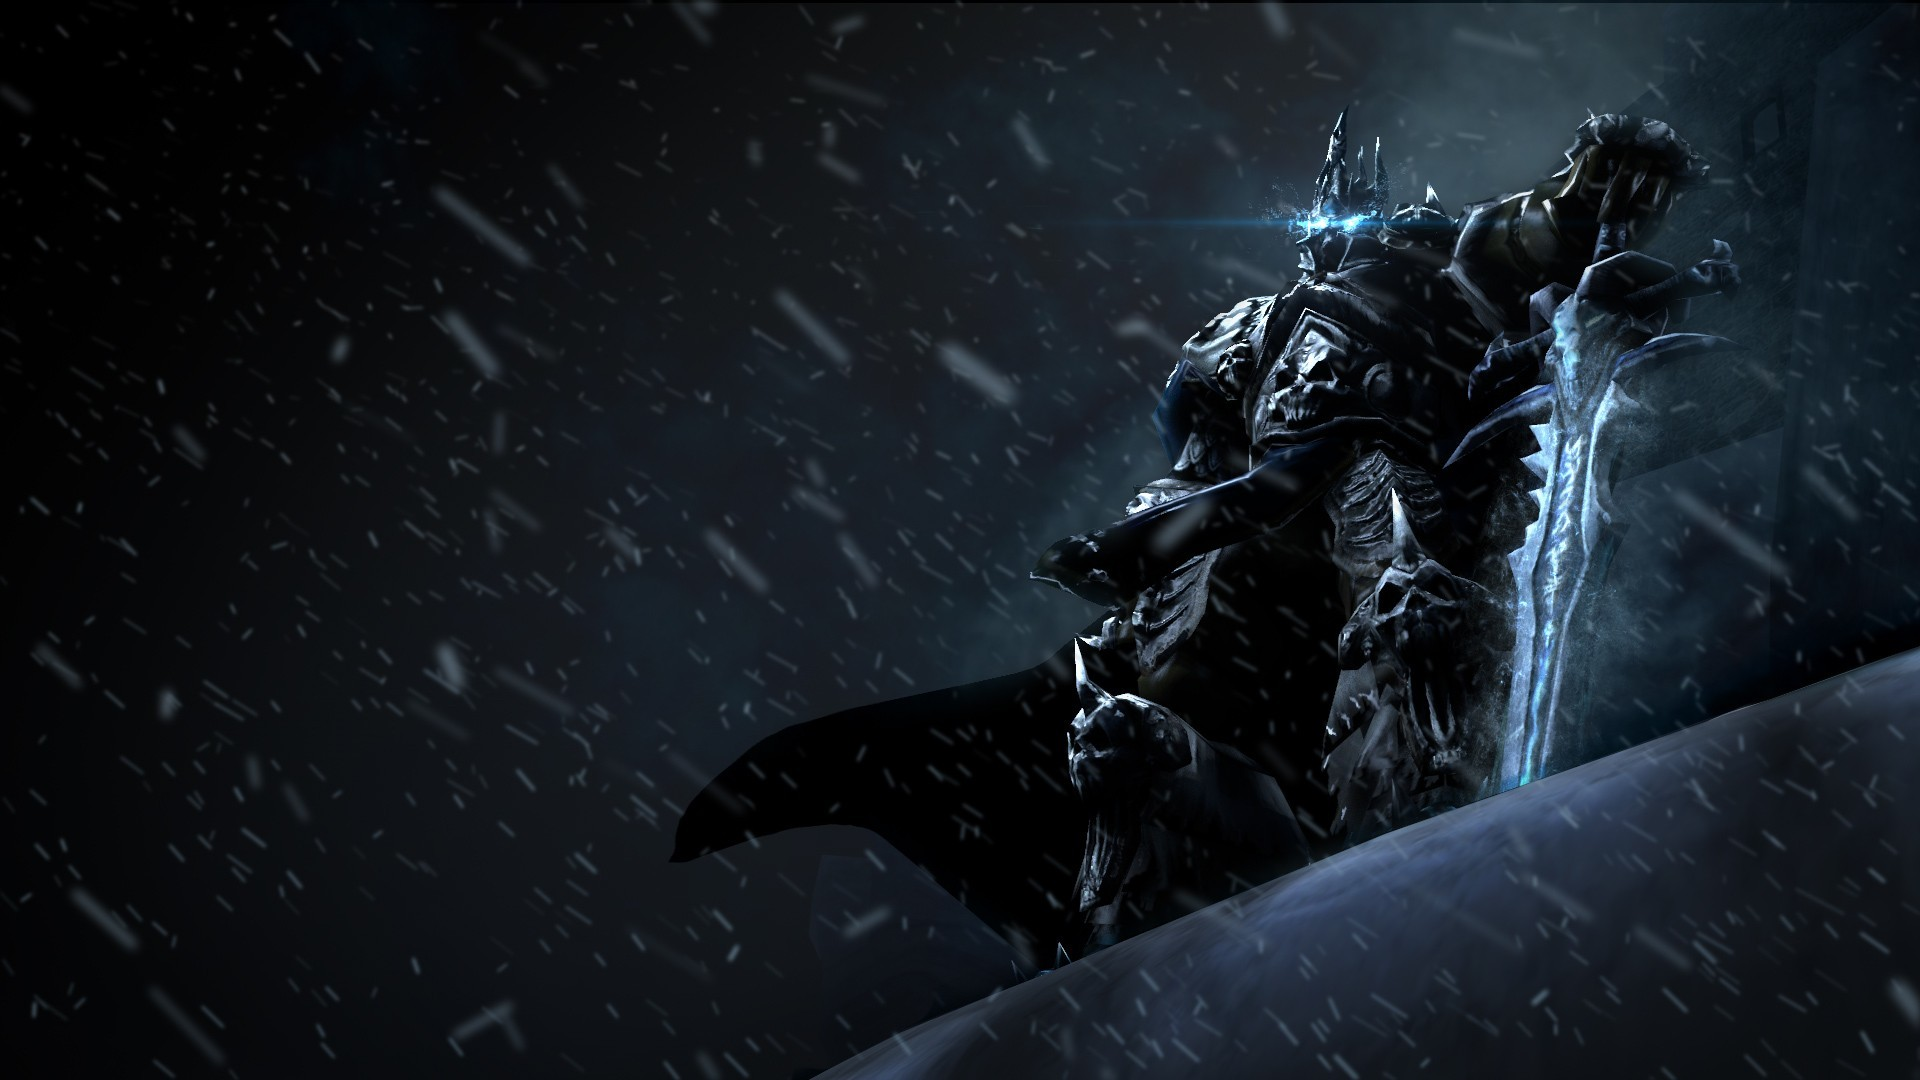 Arthas, Lich King, Frostmourne, World of Warcraft, Phoenix wright Wallpapers  HD / Desktop and Mobile Backgrounds